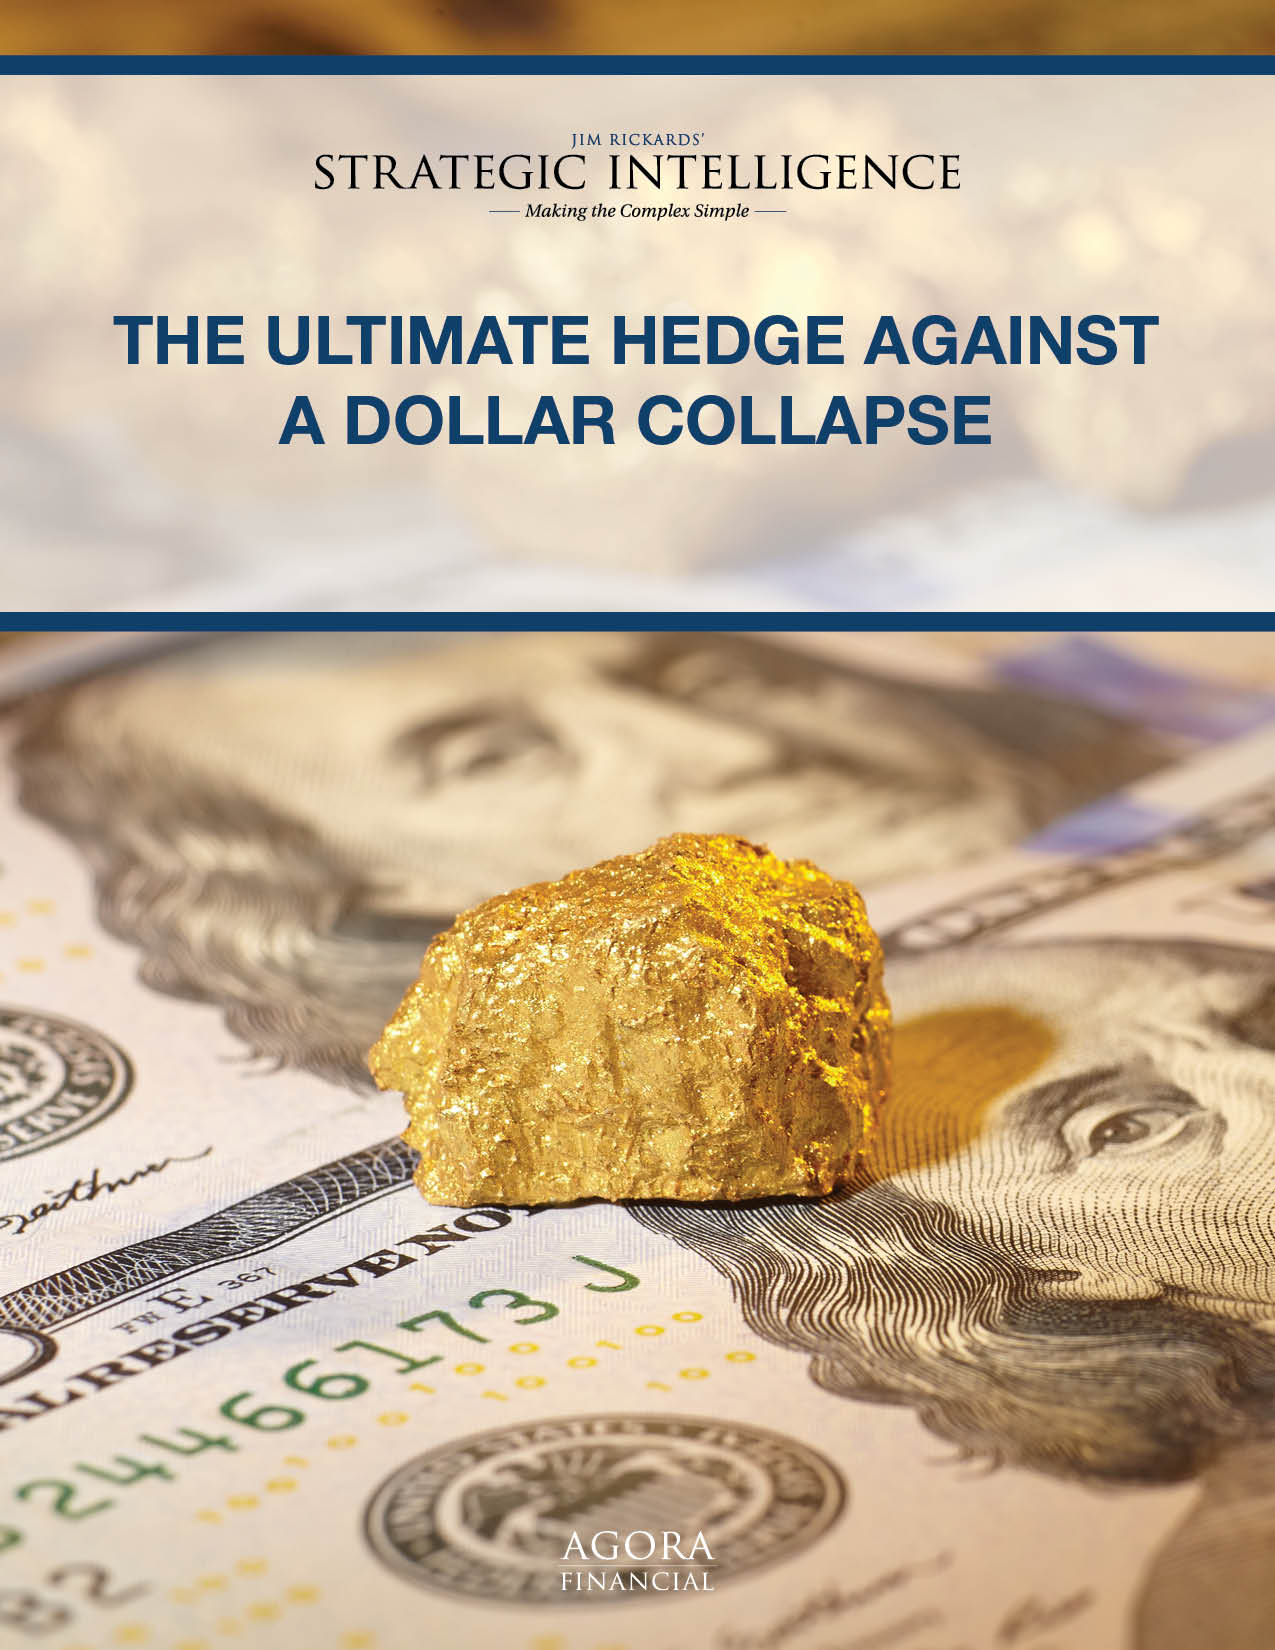 The Ultimate Hedge Against a Dollar Collapse - Agora Financial